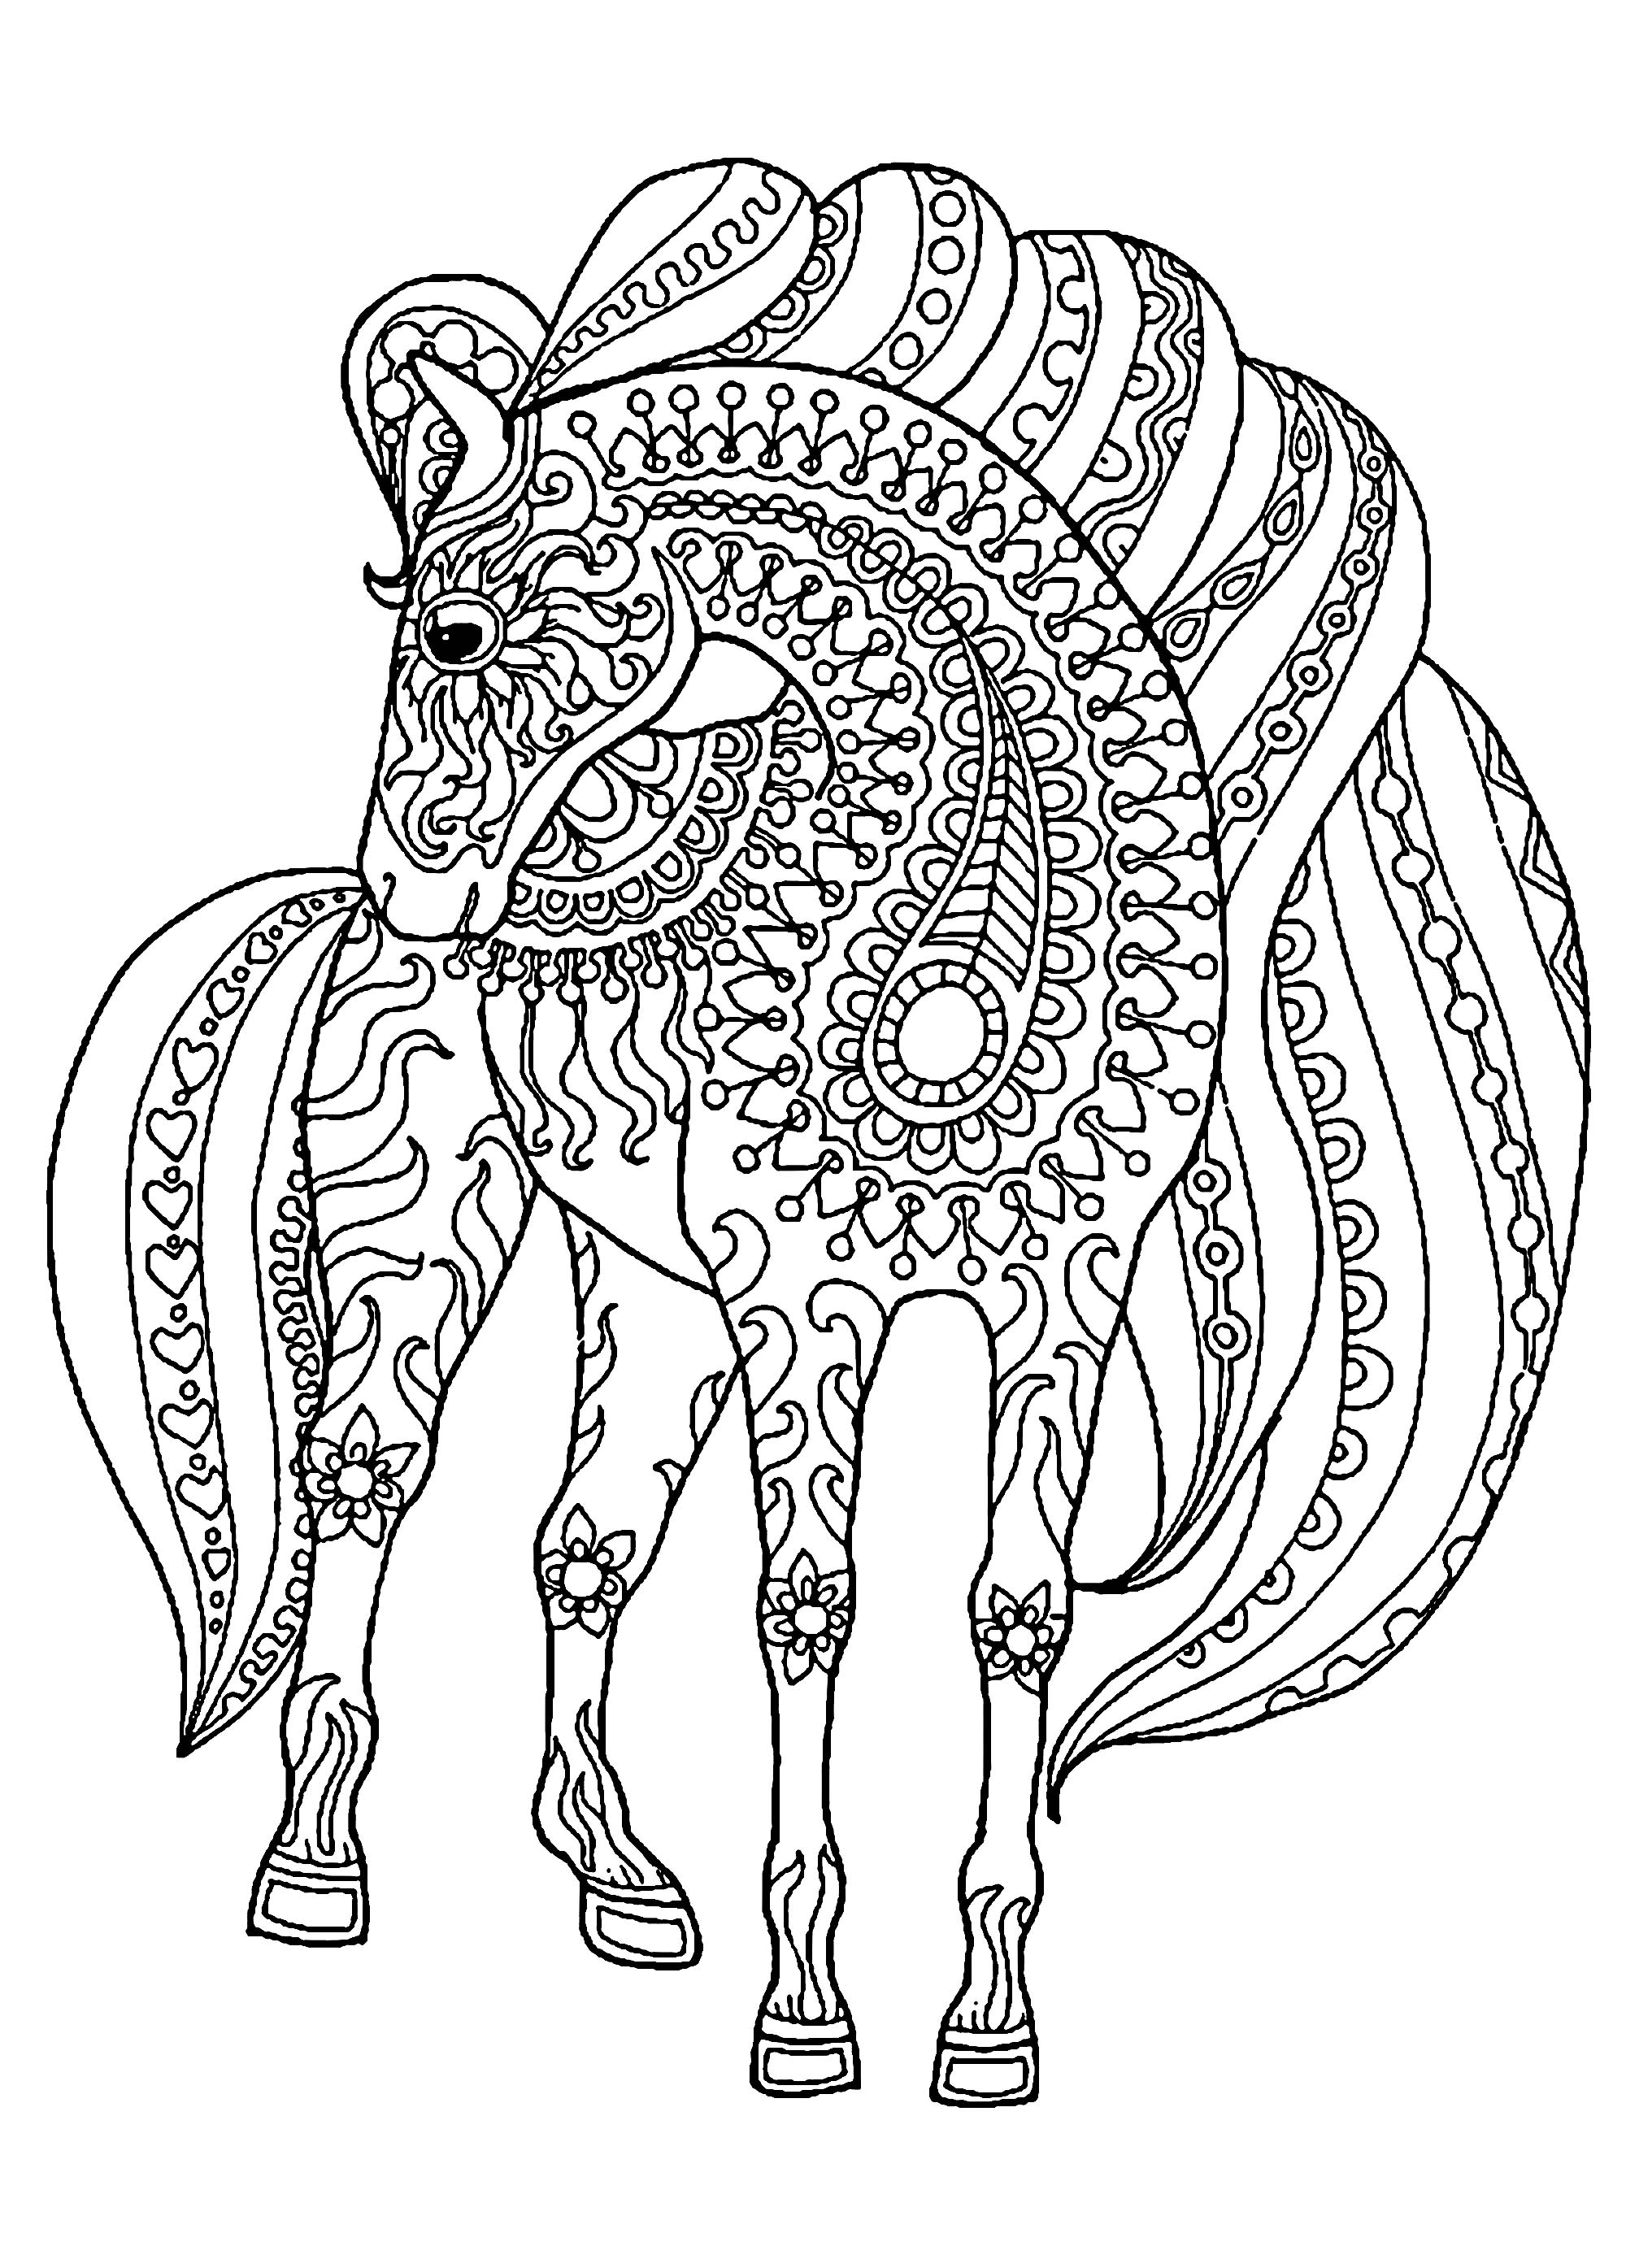 Horses free to color for children - Horses Kids Coloring Pages